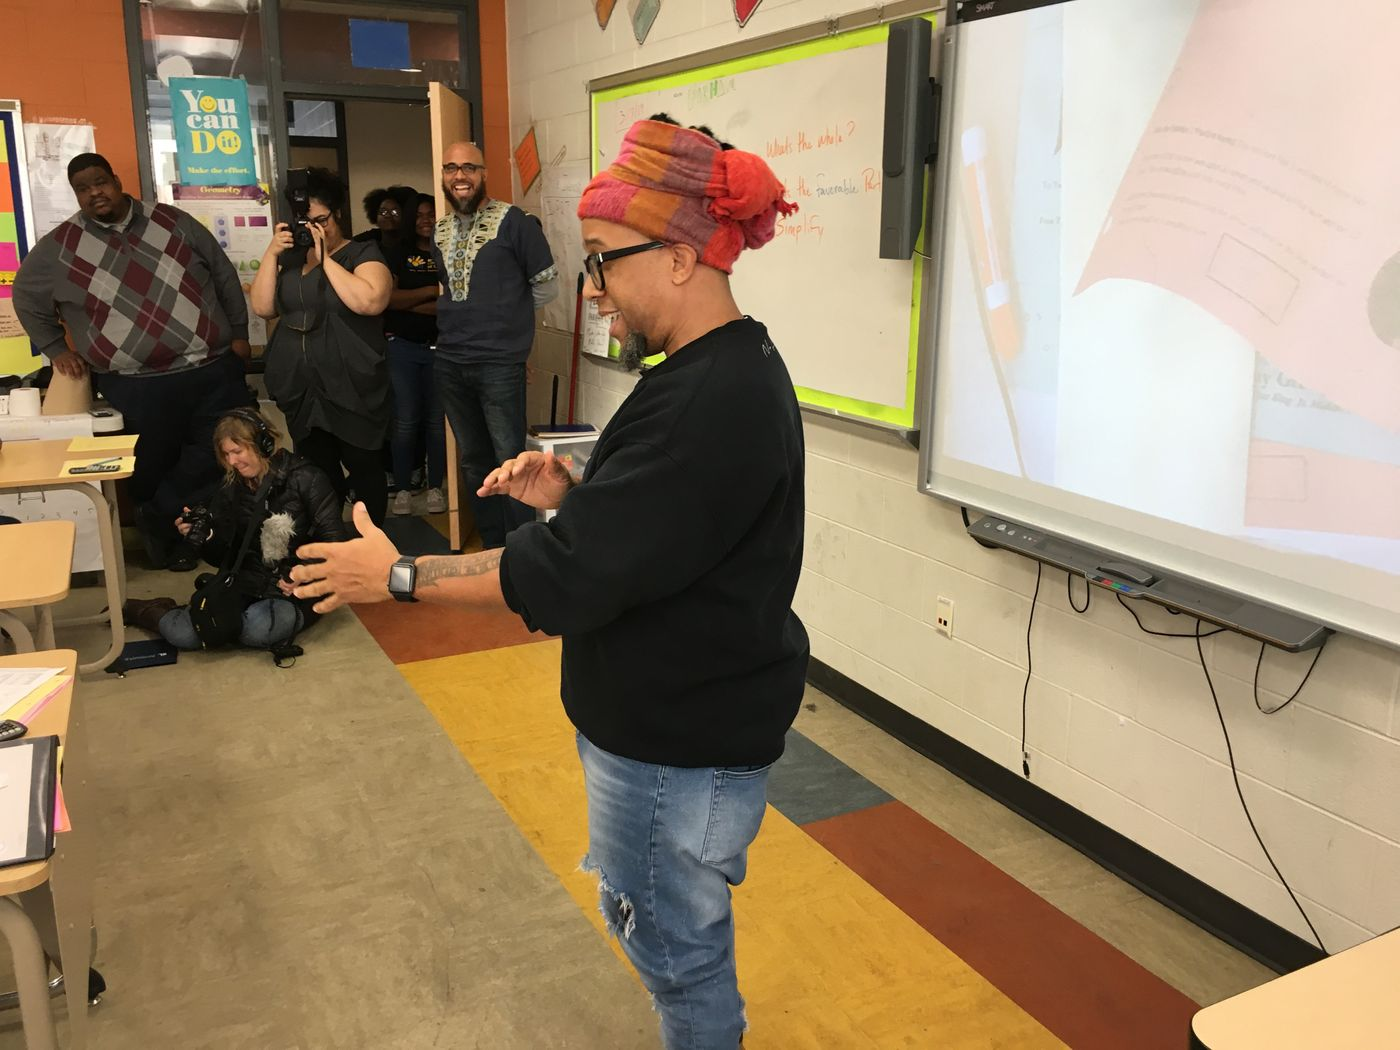 Rapper Speech visits MLK students with message of love, encouragement